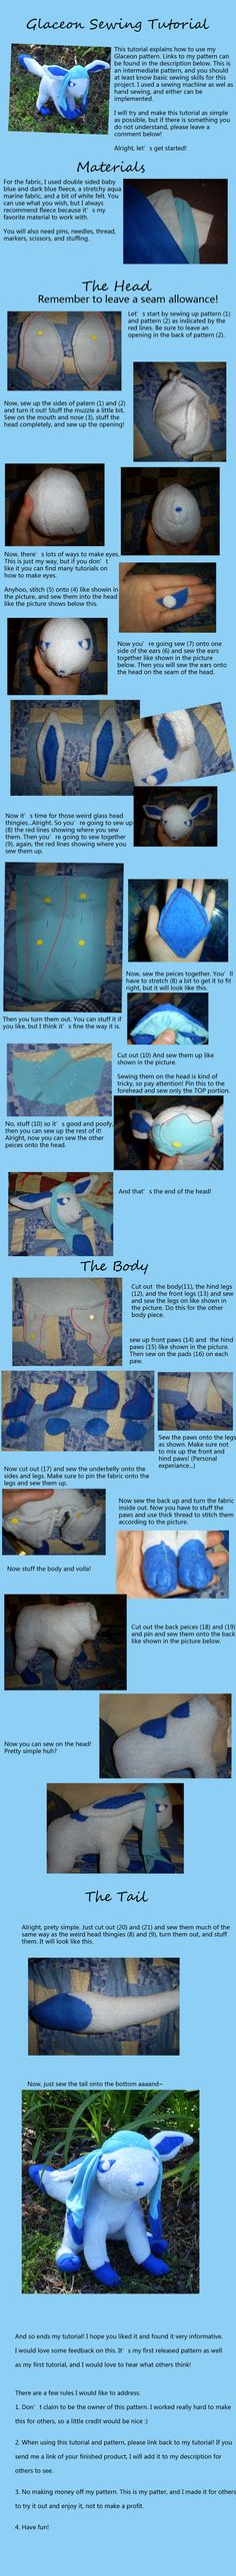 Glaceon Sewing Tutorial by garrenn.deviantart.com